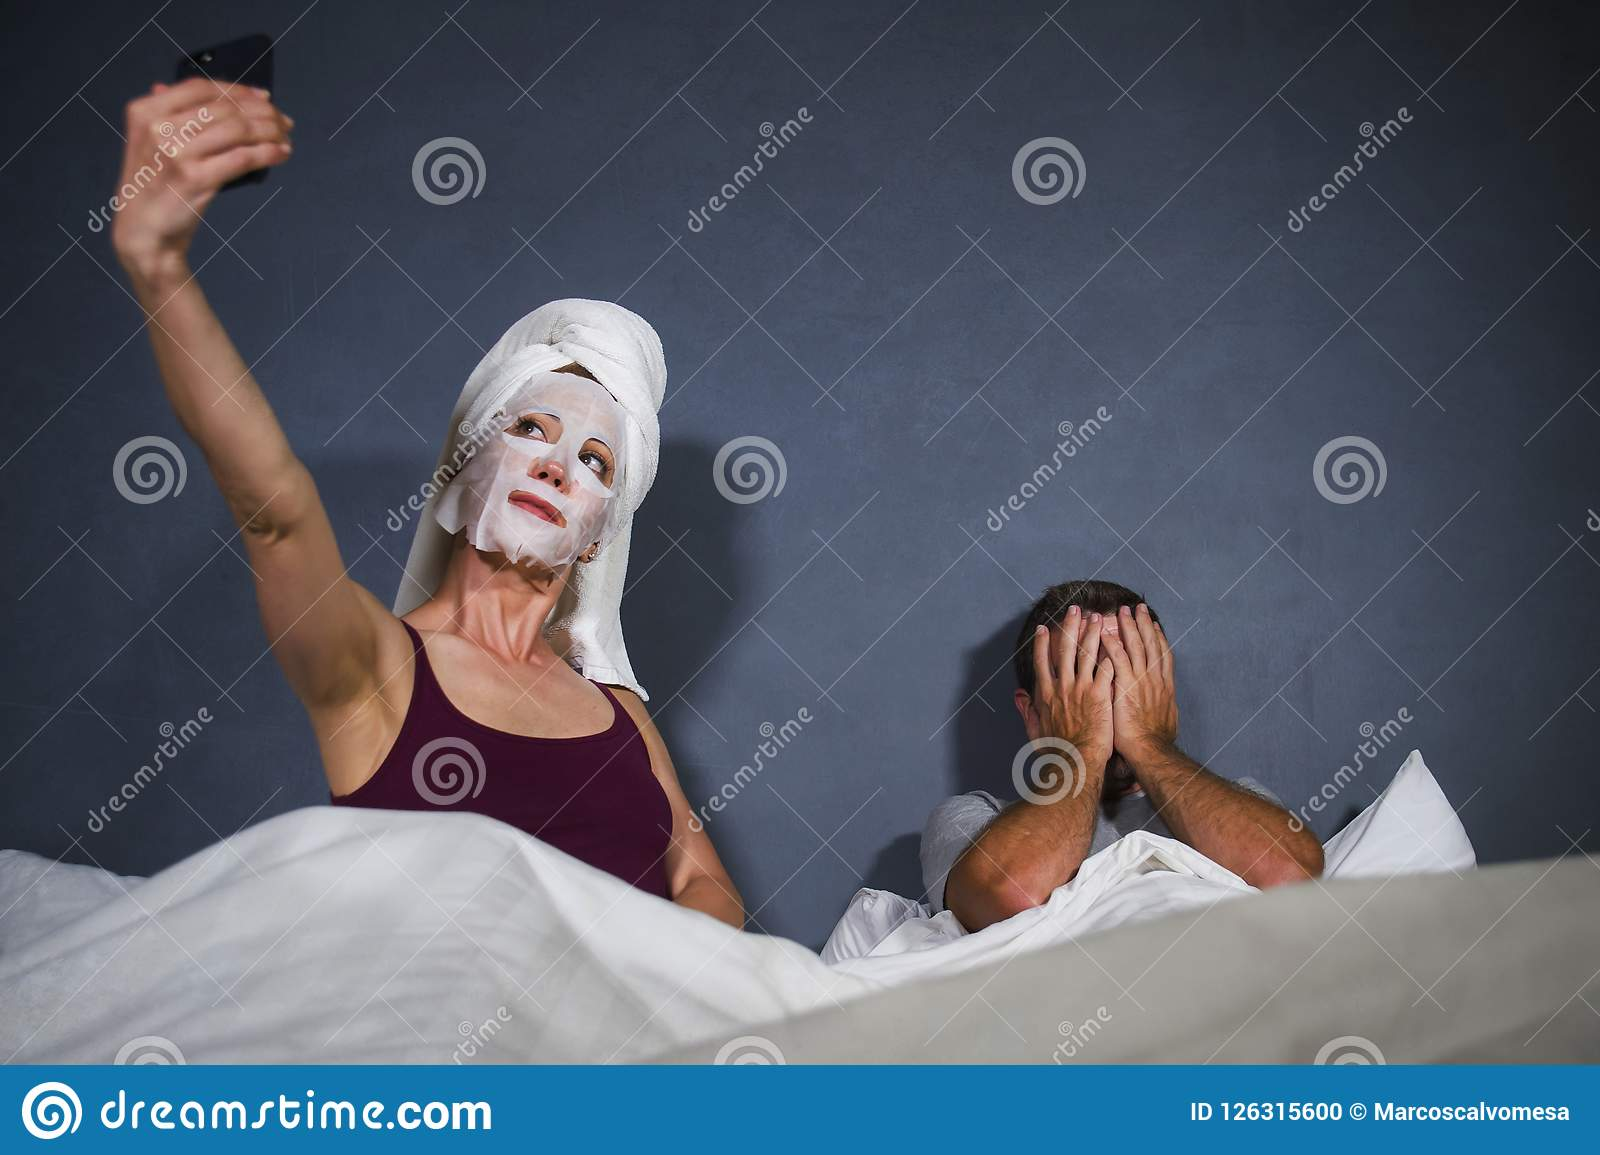 Eccentric housewife with makeup facial mask and towel taking selfie in bed and husband with desperate face expression in weird man